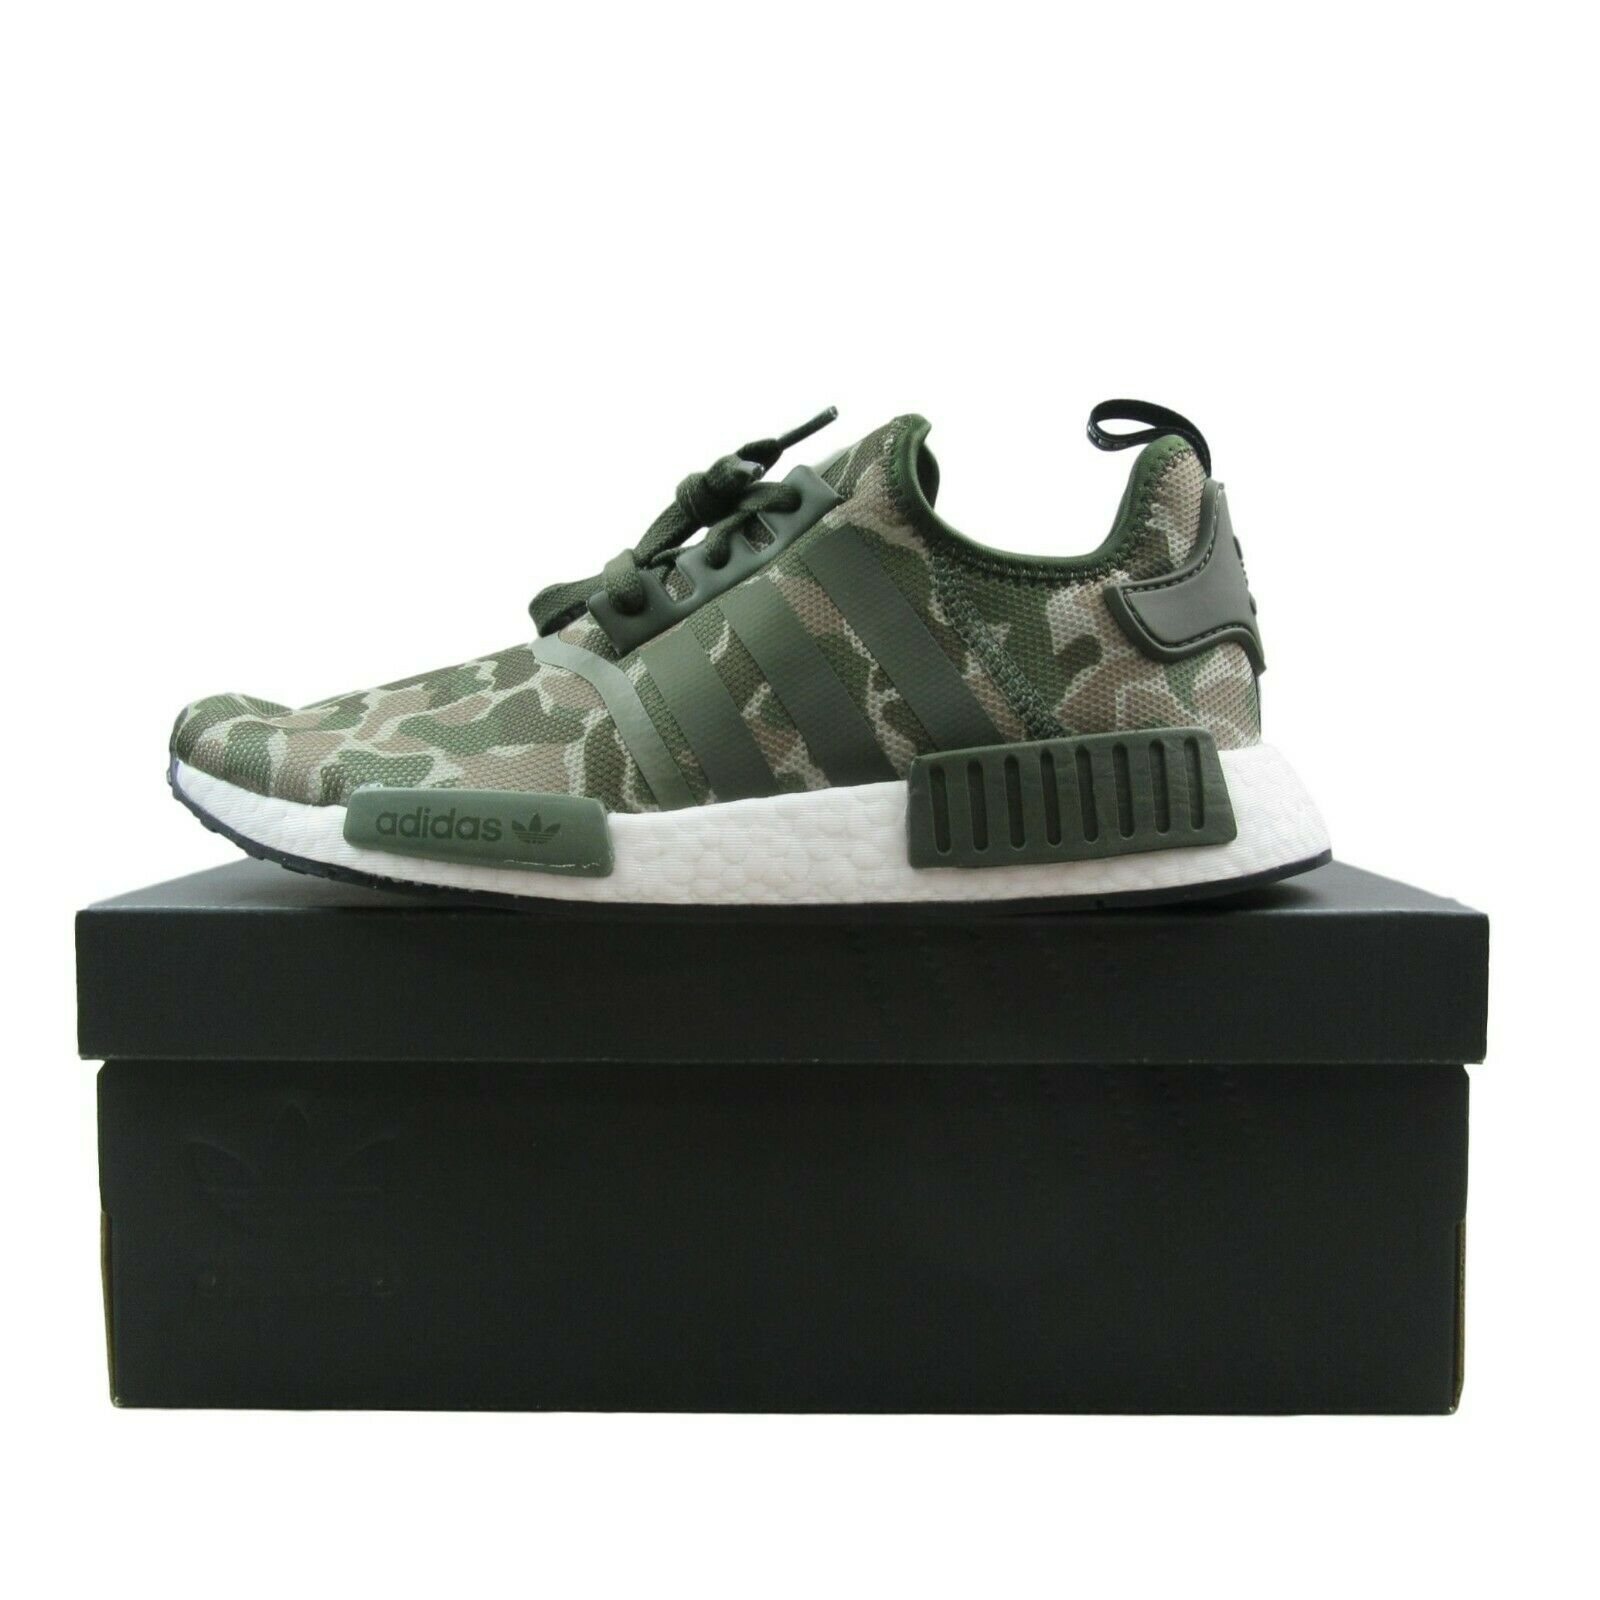 07c806c92 Adidas NMD R1 Duck Camo Running Shoes Size 9.5 Sesame Base ...